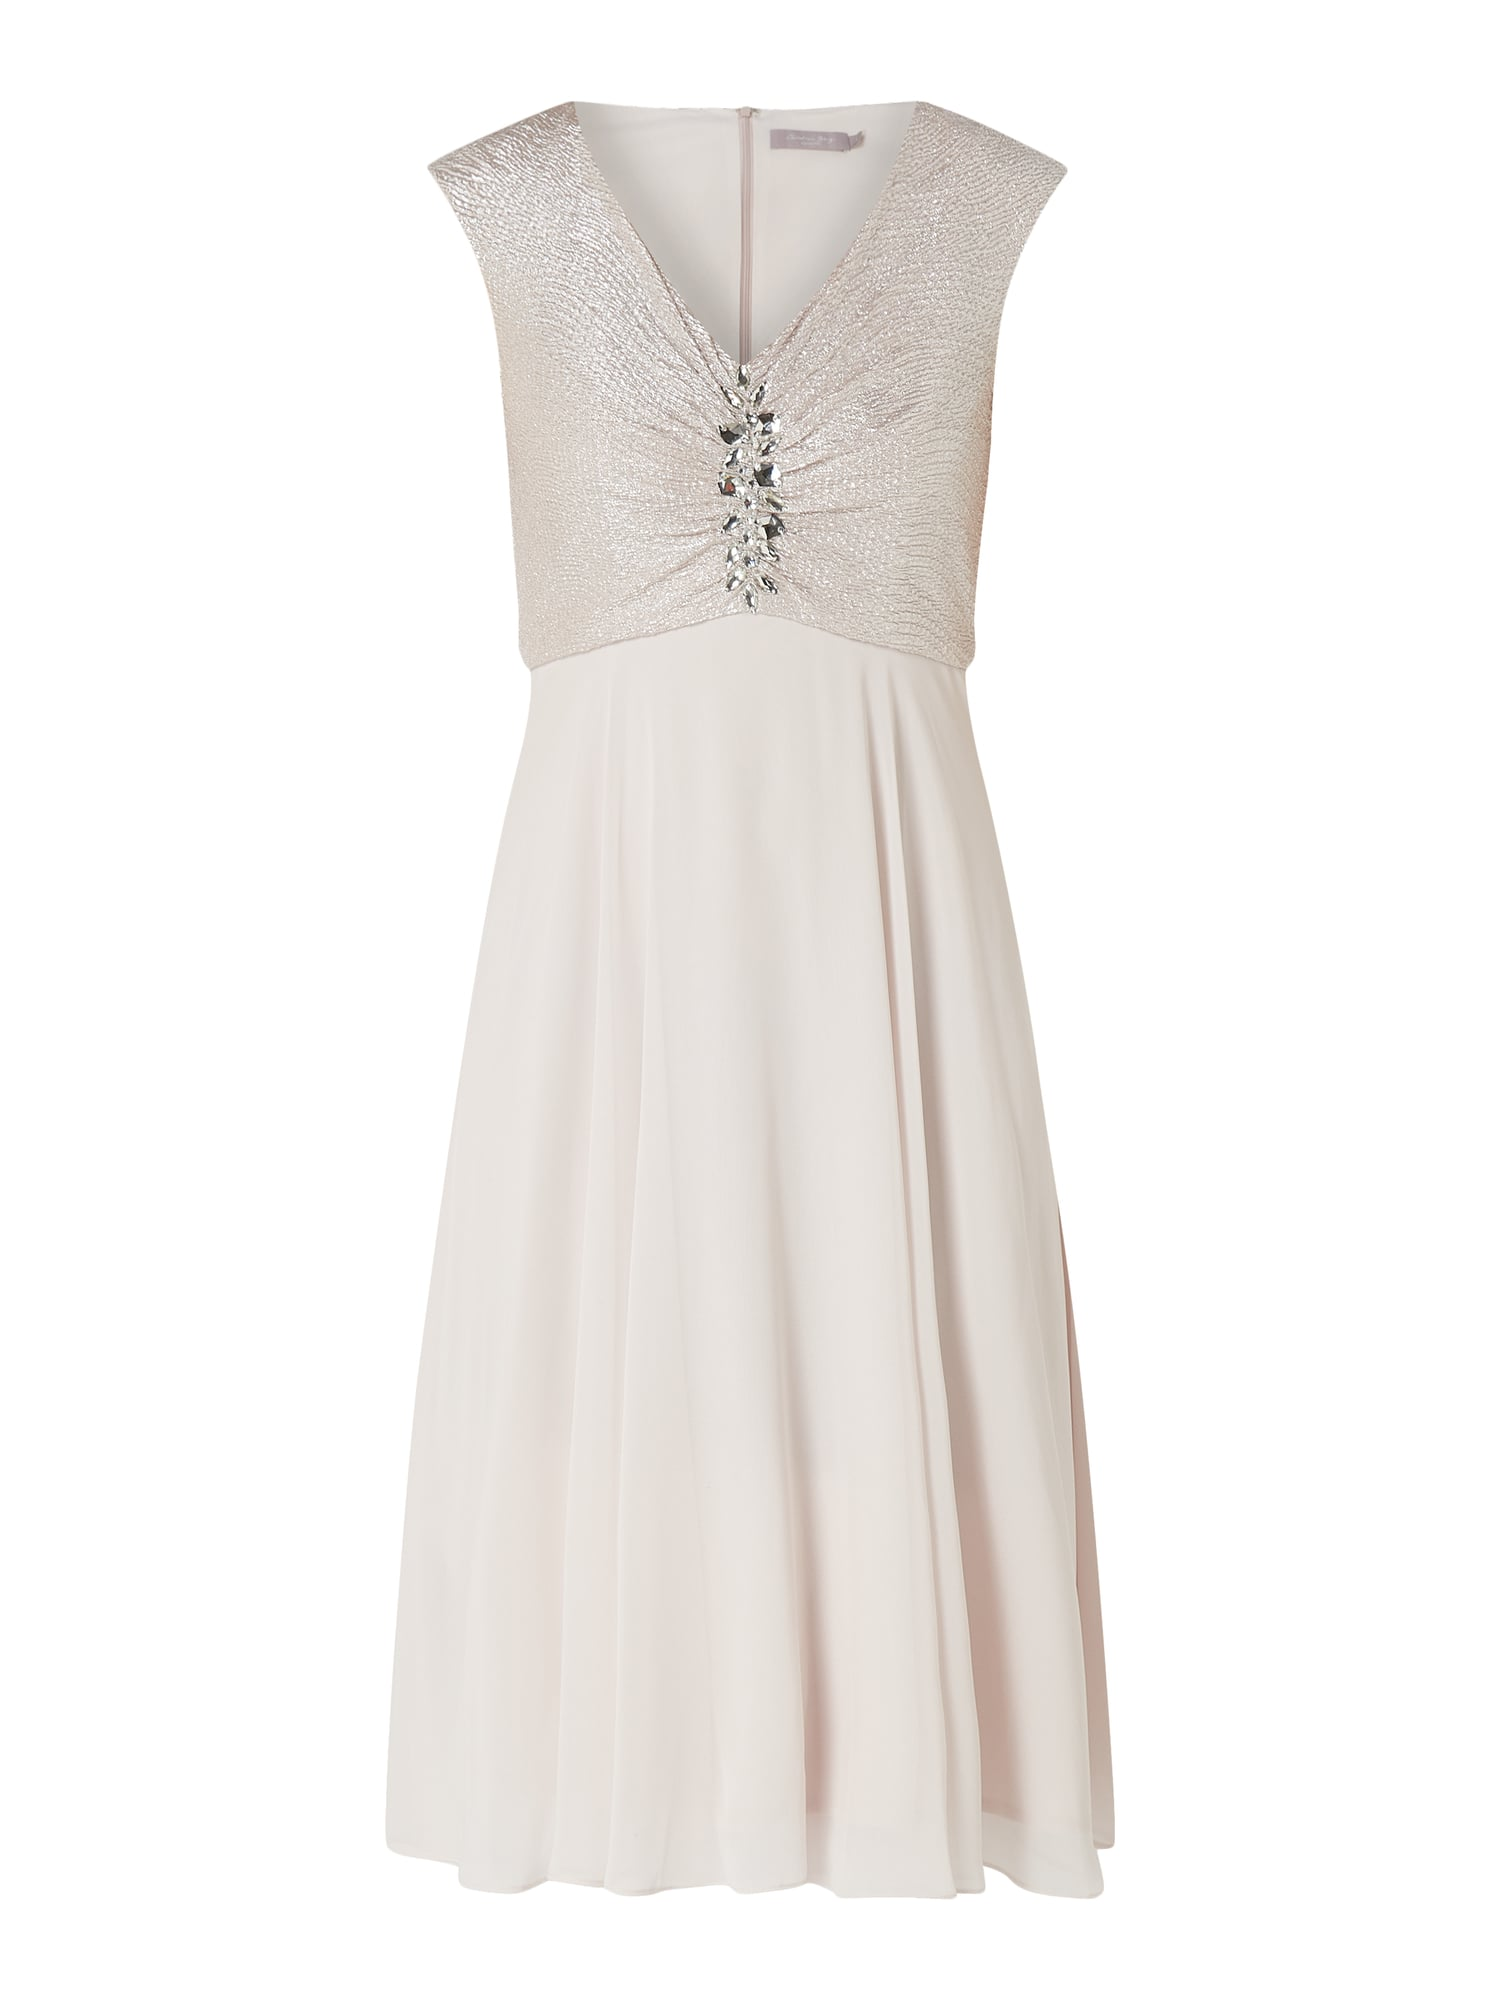 19e246666ce CHRISTIAN-BERG-COCKTAIL Cocktailkleid mit Ziersteinen in Rosé online kaufen  (9926798) ▷ P C Online Shop